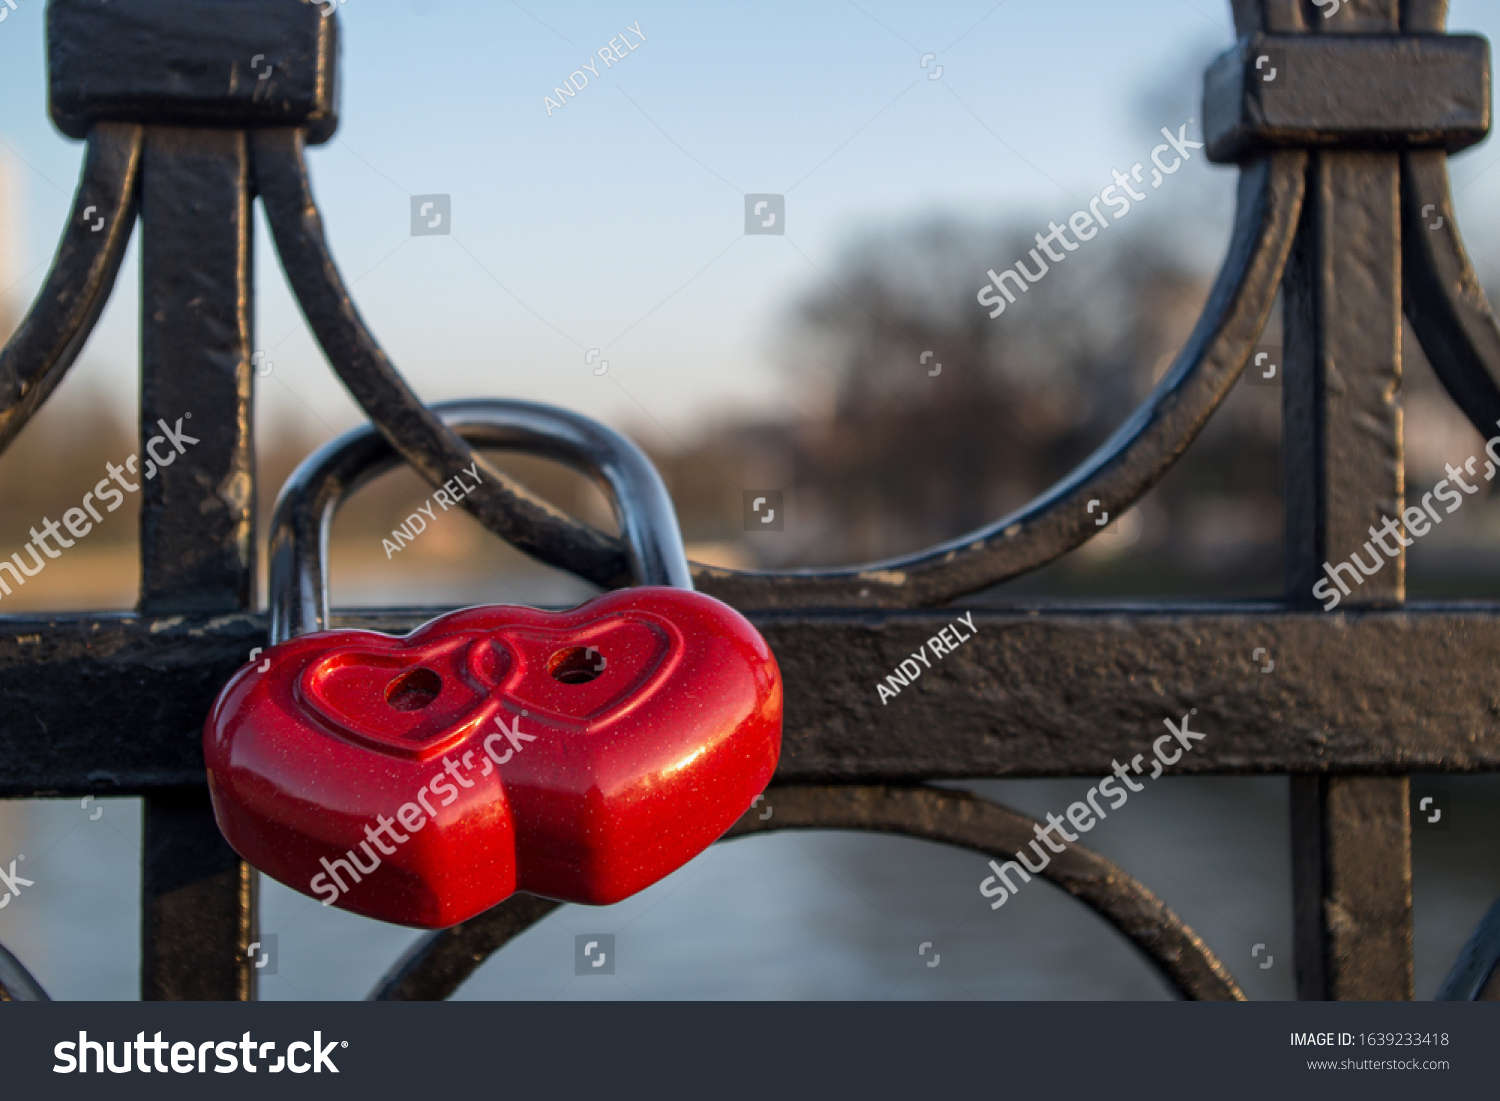 stock-photo-connected-two-hearts-in-red-